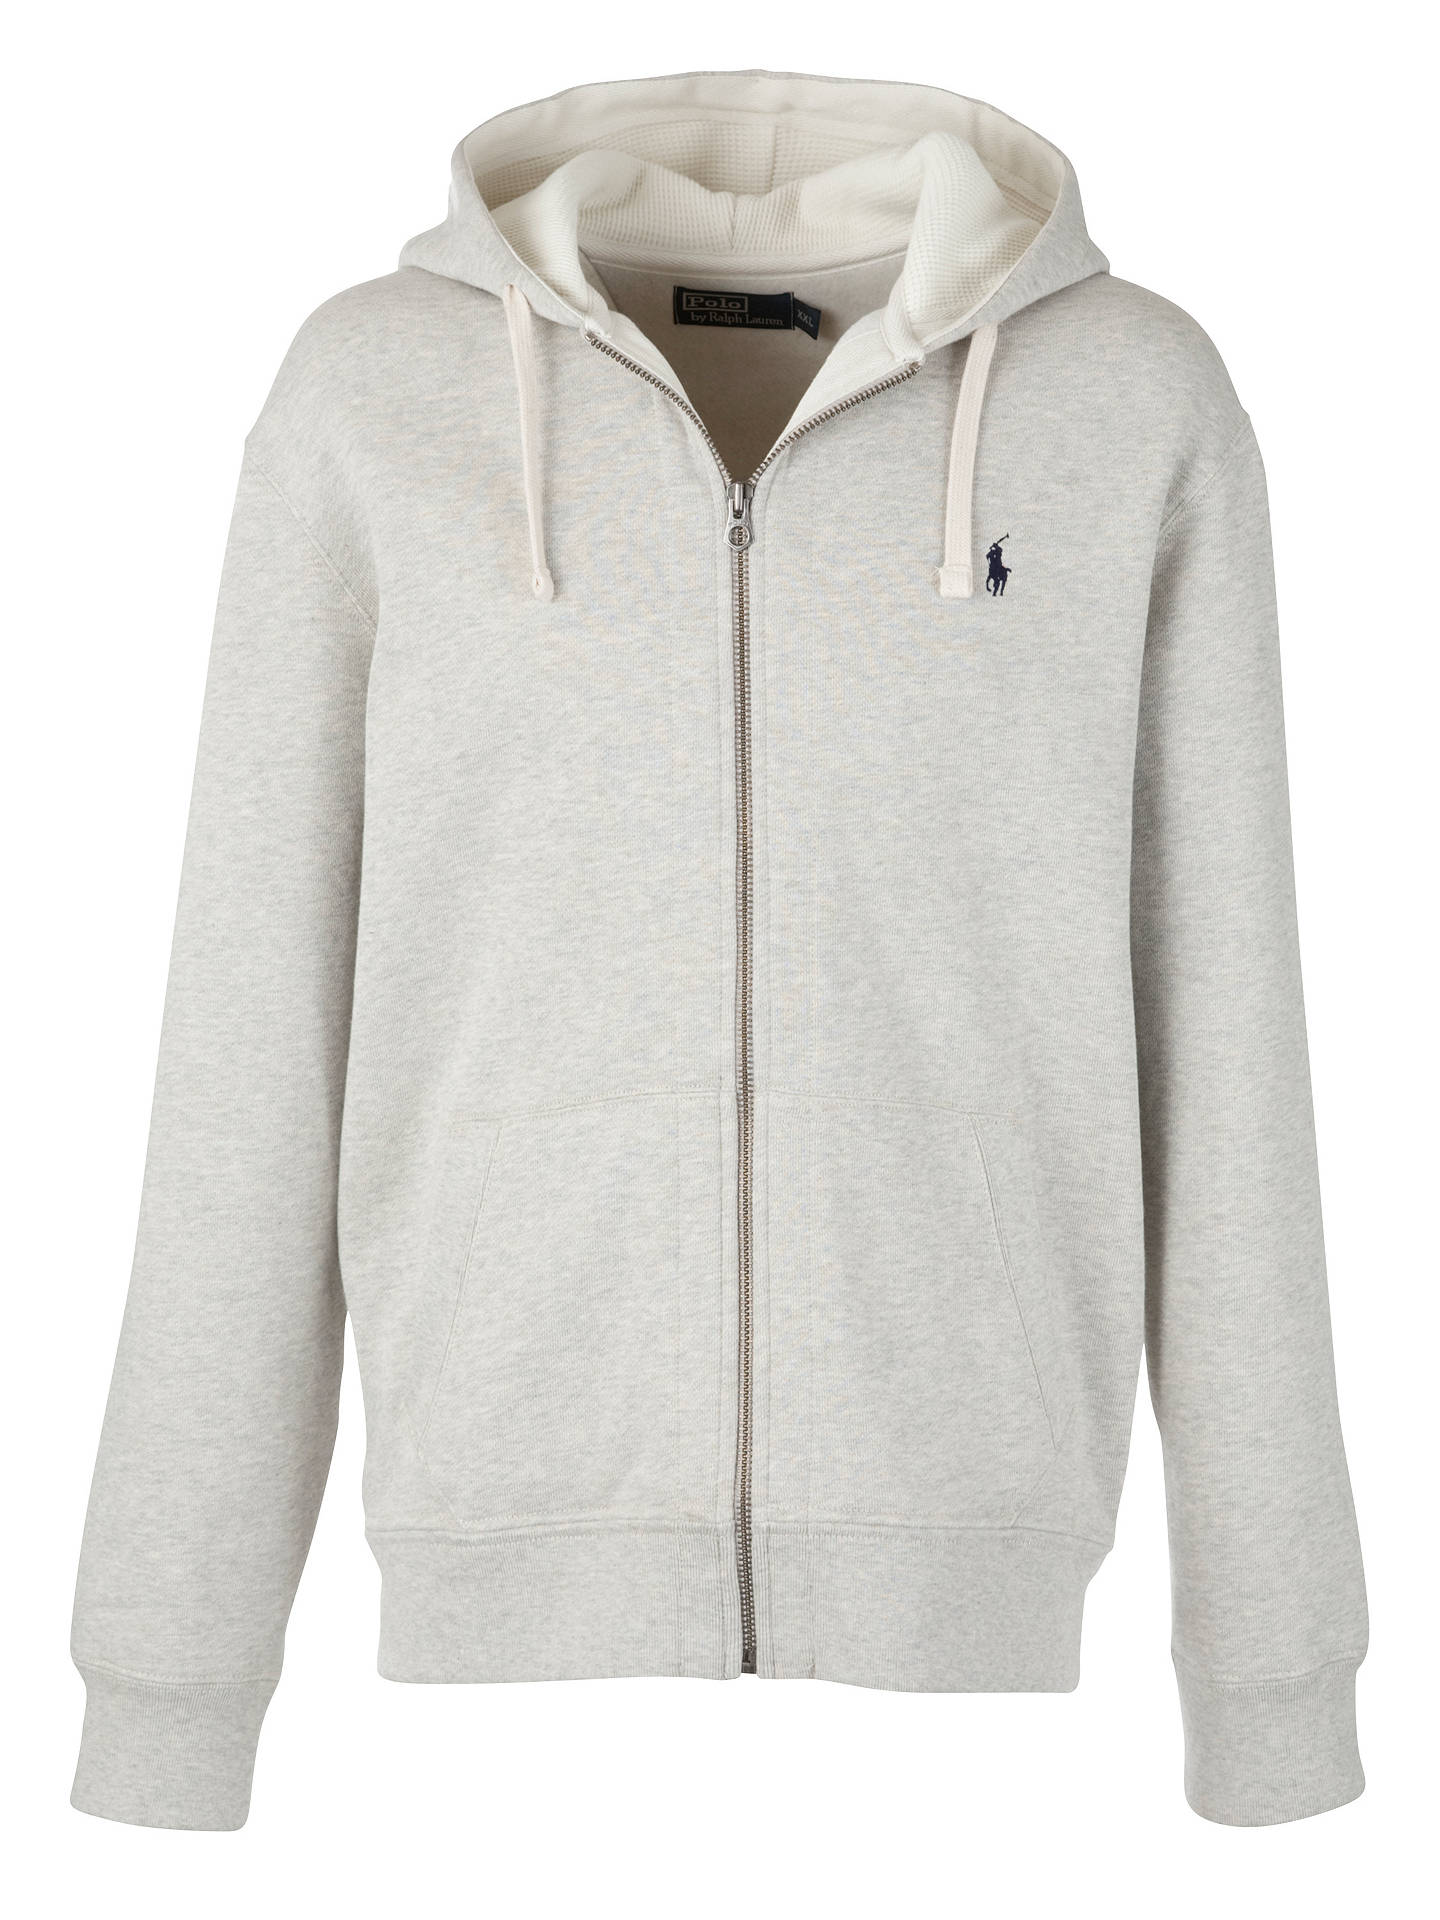 Polo Ralph Lauren Men's Grey Zip Up Hoodie | GIULIOFASHION